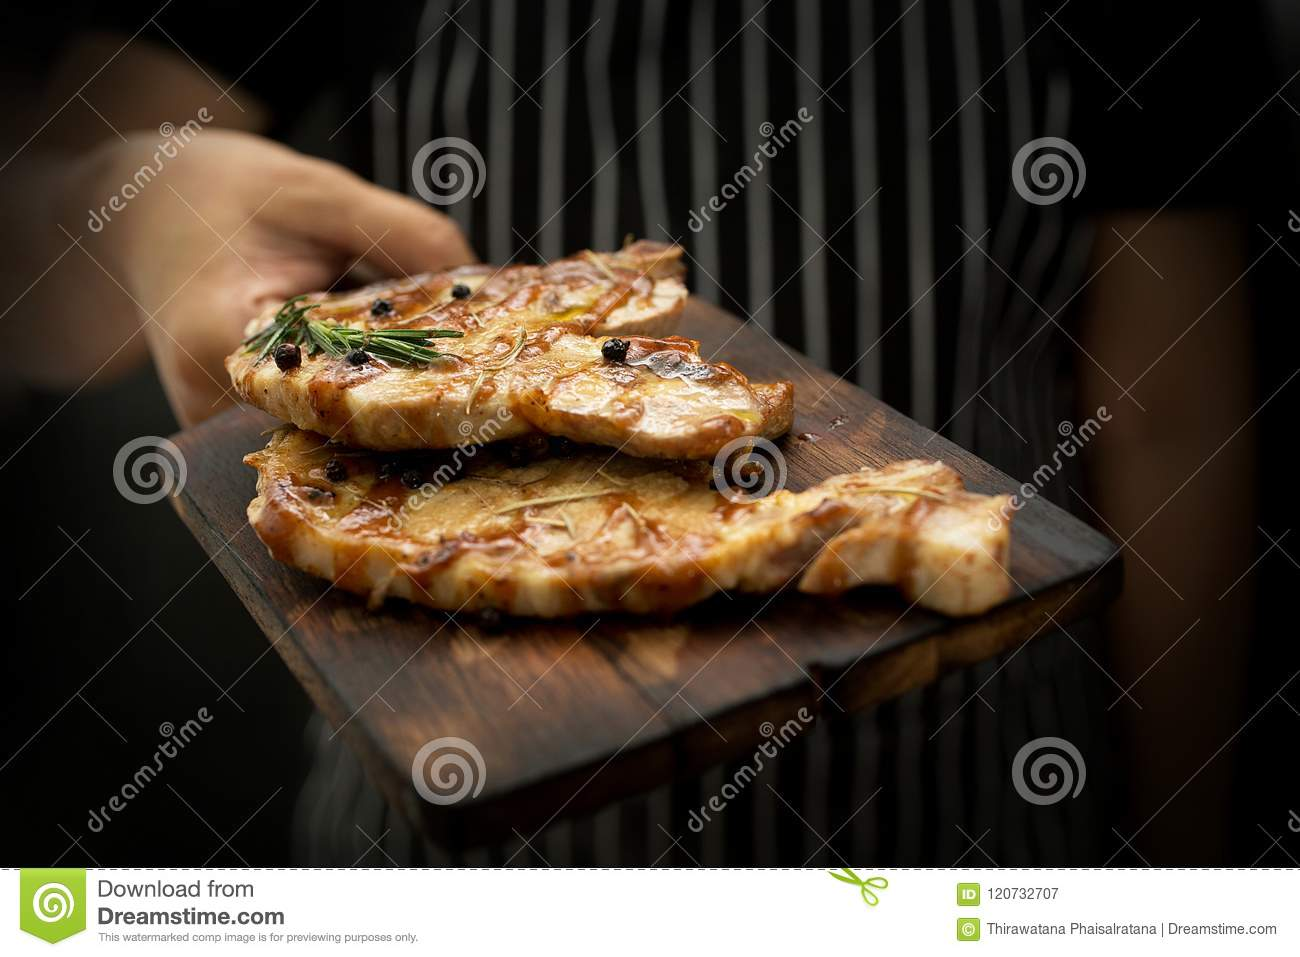 Image cooking on kitchen. Master Chef holding steak. Woman Chef